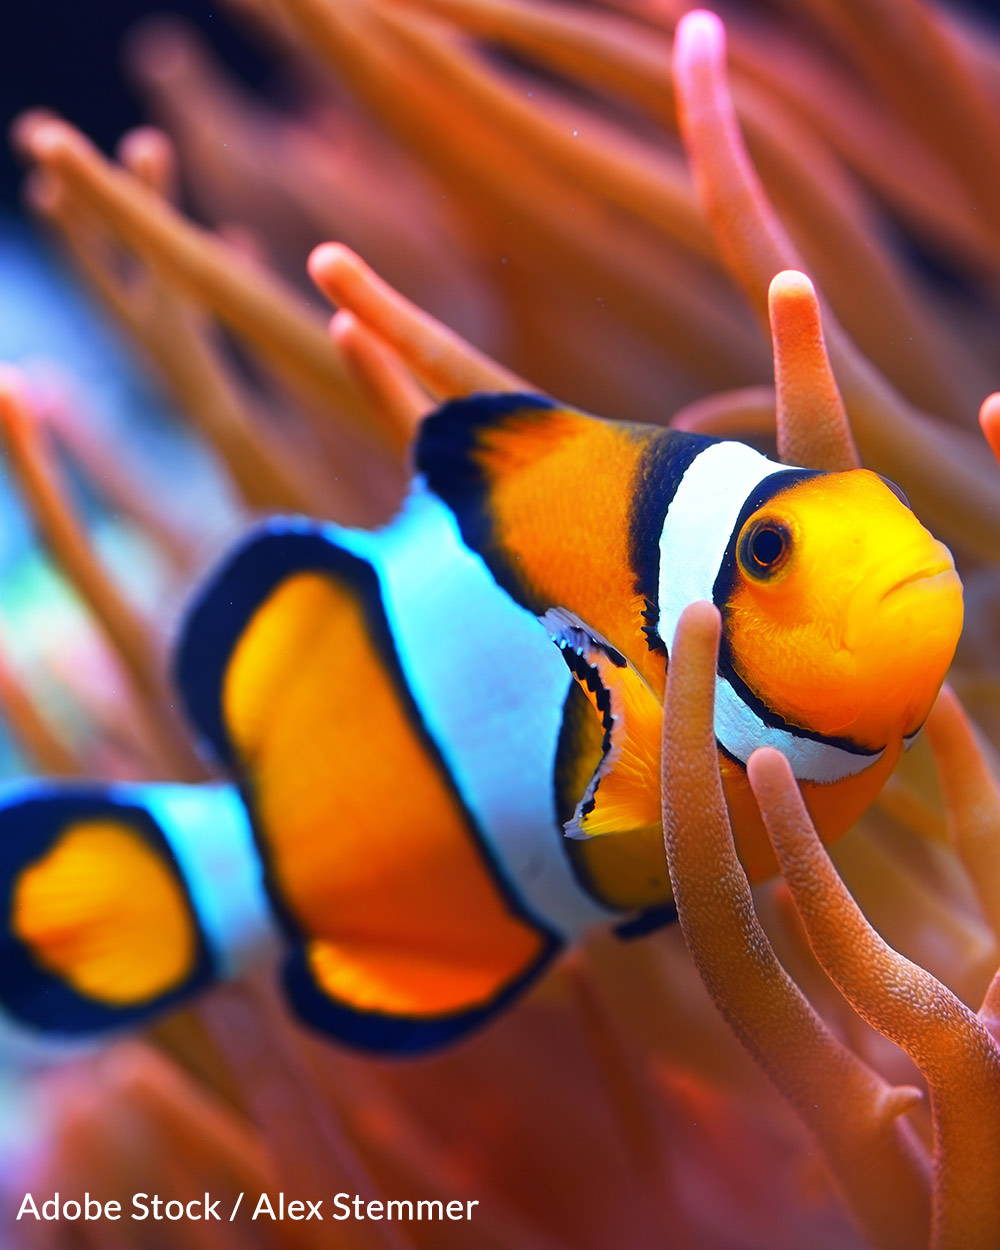 Help us save the clownfish before it is too late!